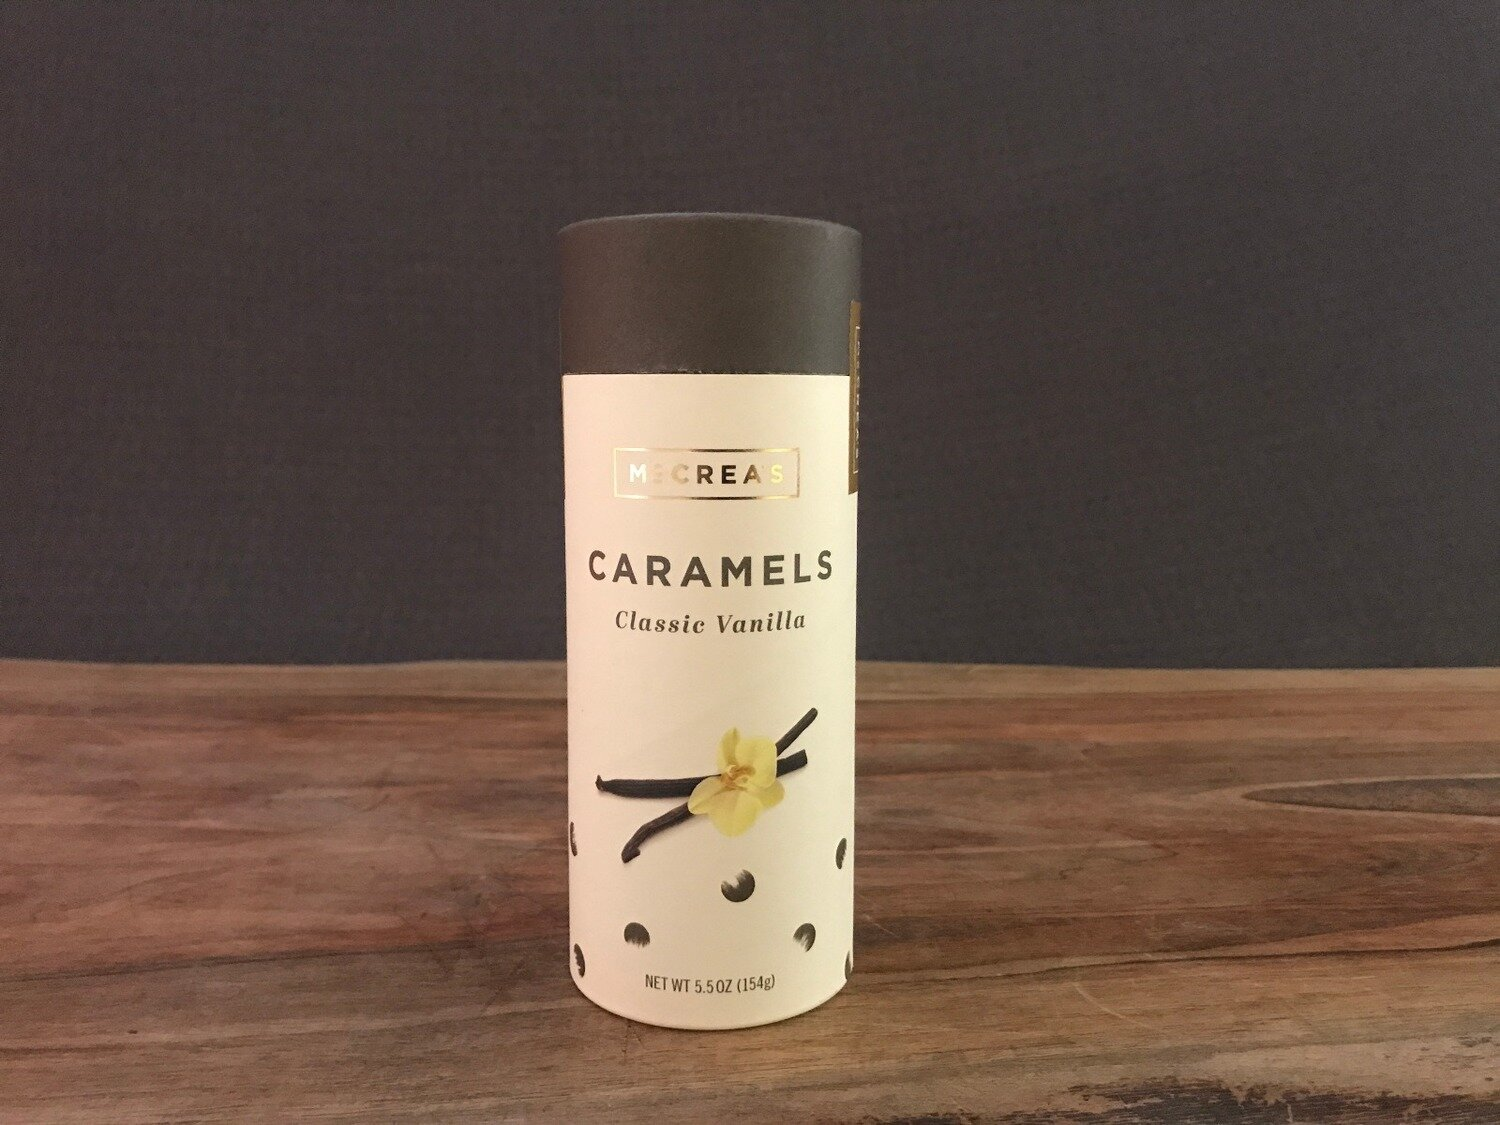 McCreas Caramels Vanilla 5.5oz